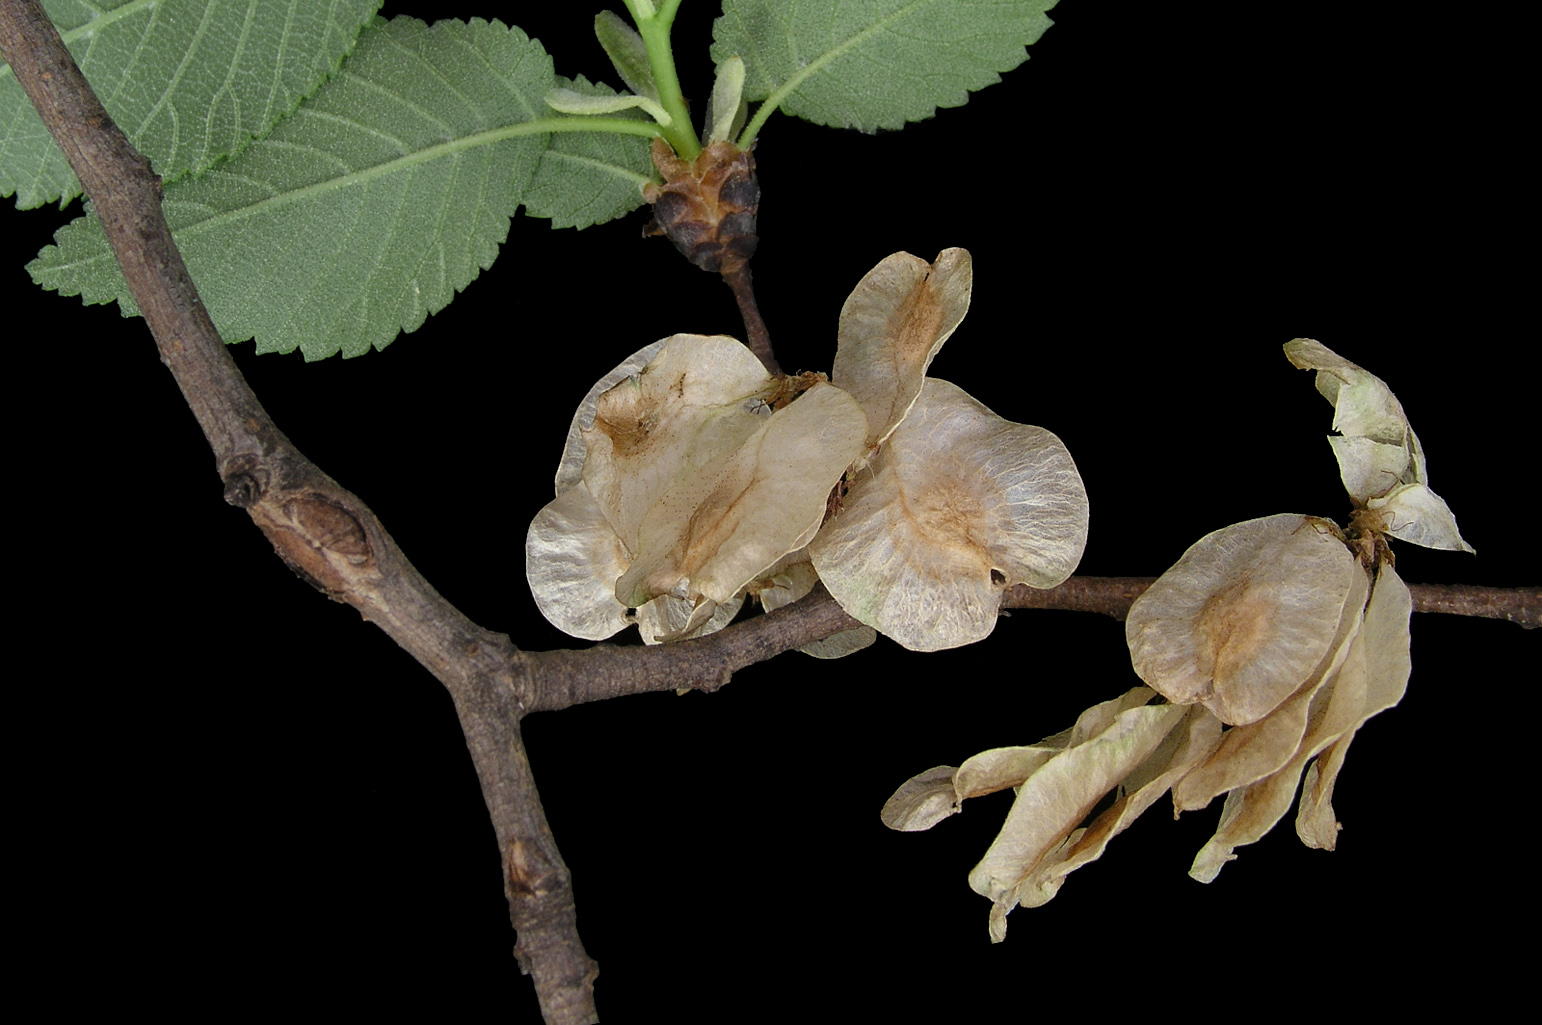 Branch with several samaras just about to be dispersed by the wind; the seed is at the centre of the samara